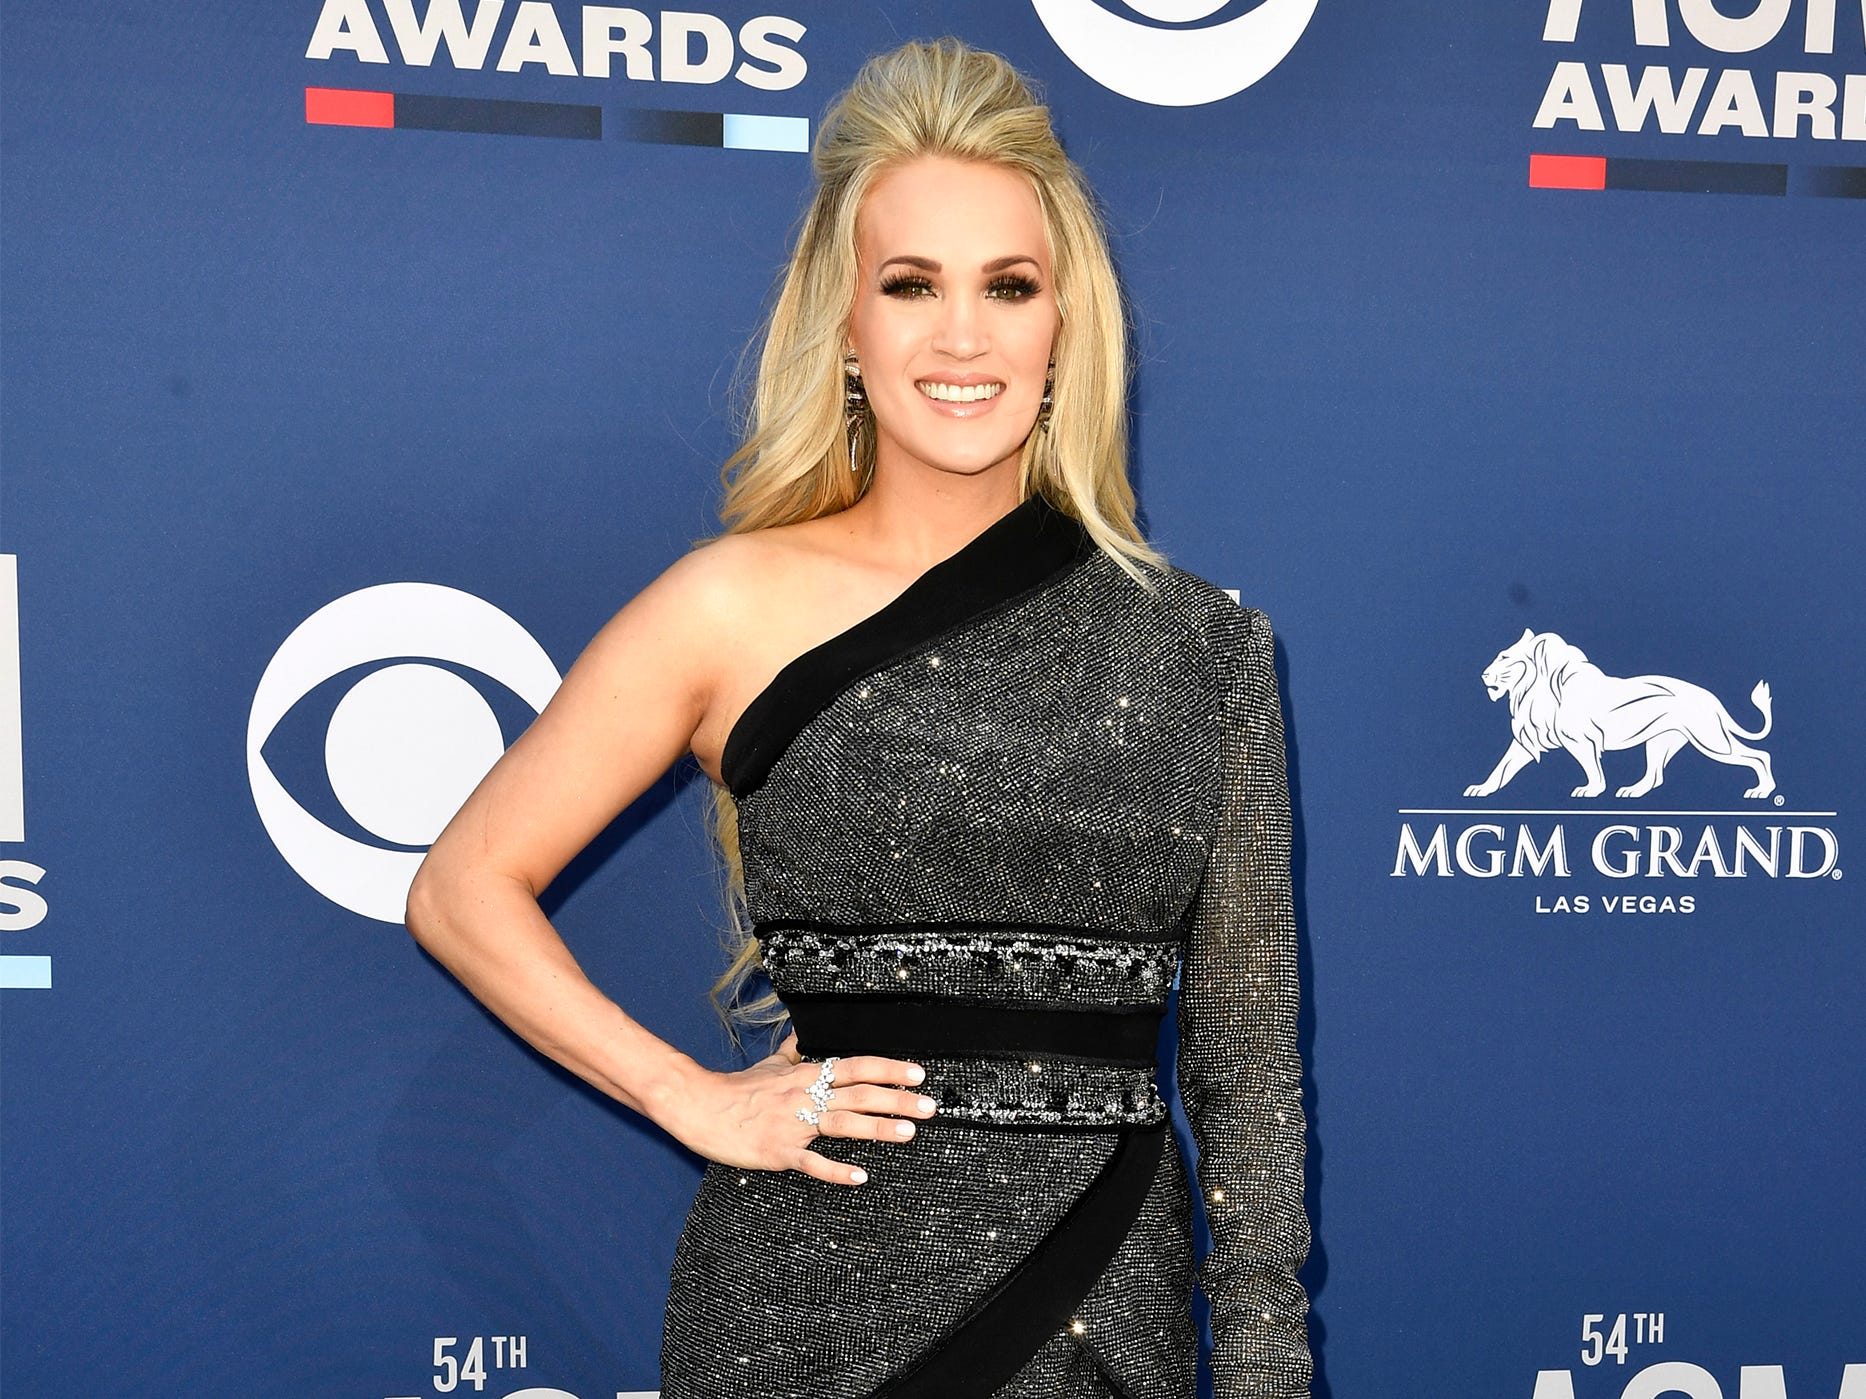 Carrie Underwood walks the red carpet at the 54TH Academy of Country Music Awards Sunday, April 7, 2019, in Las Vegas, Nev.